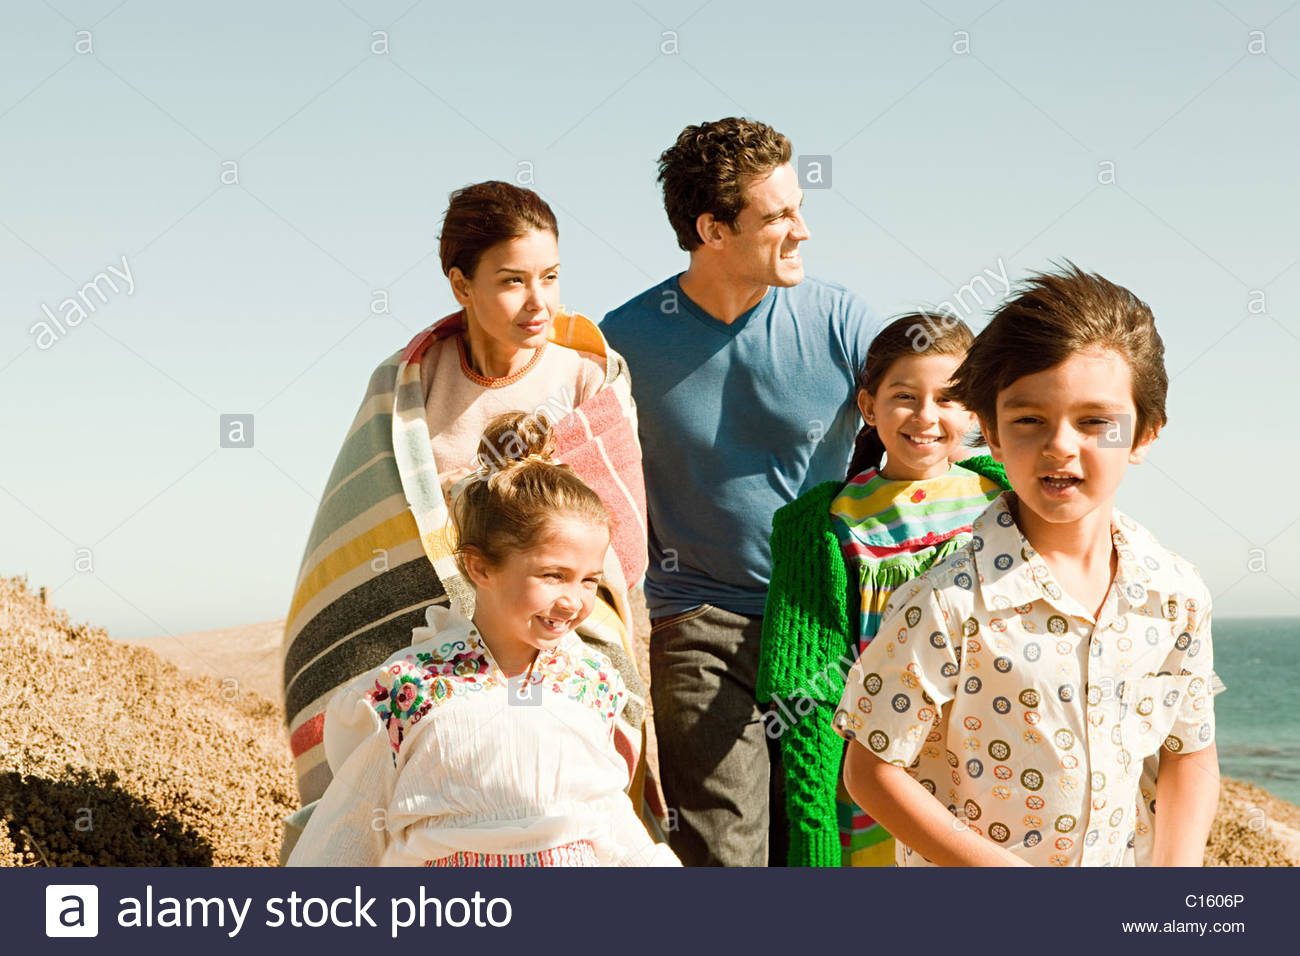 Family on vacation - Stock Image